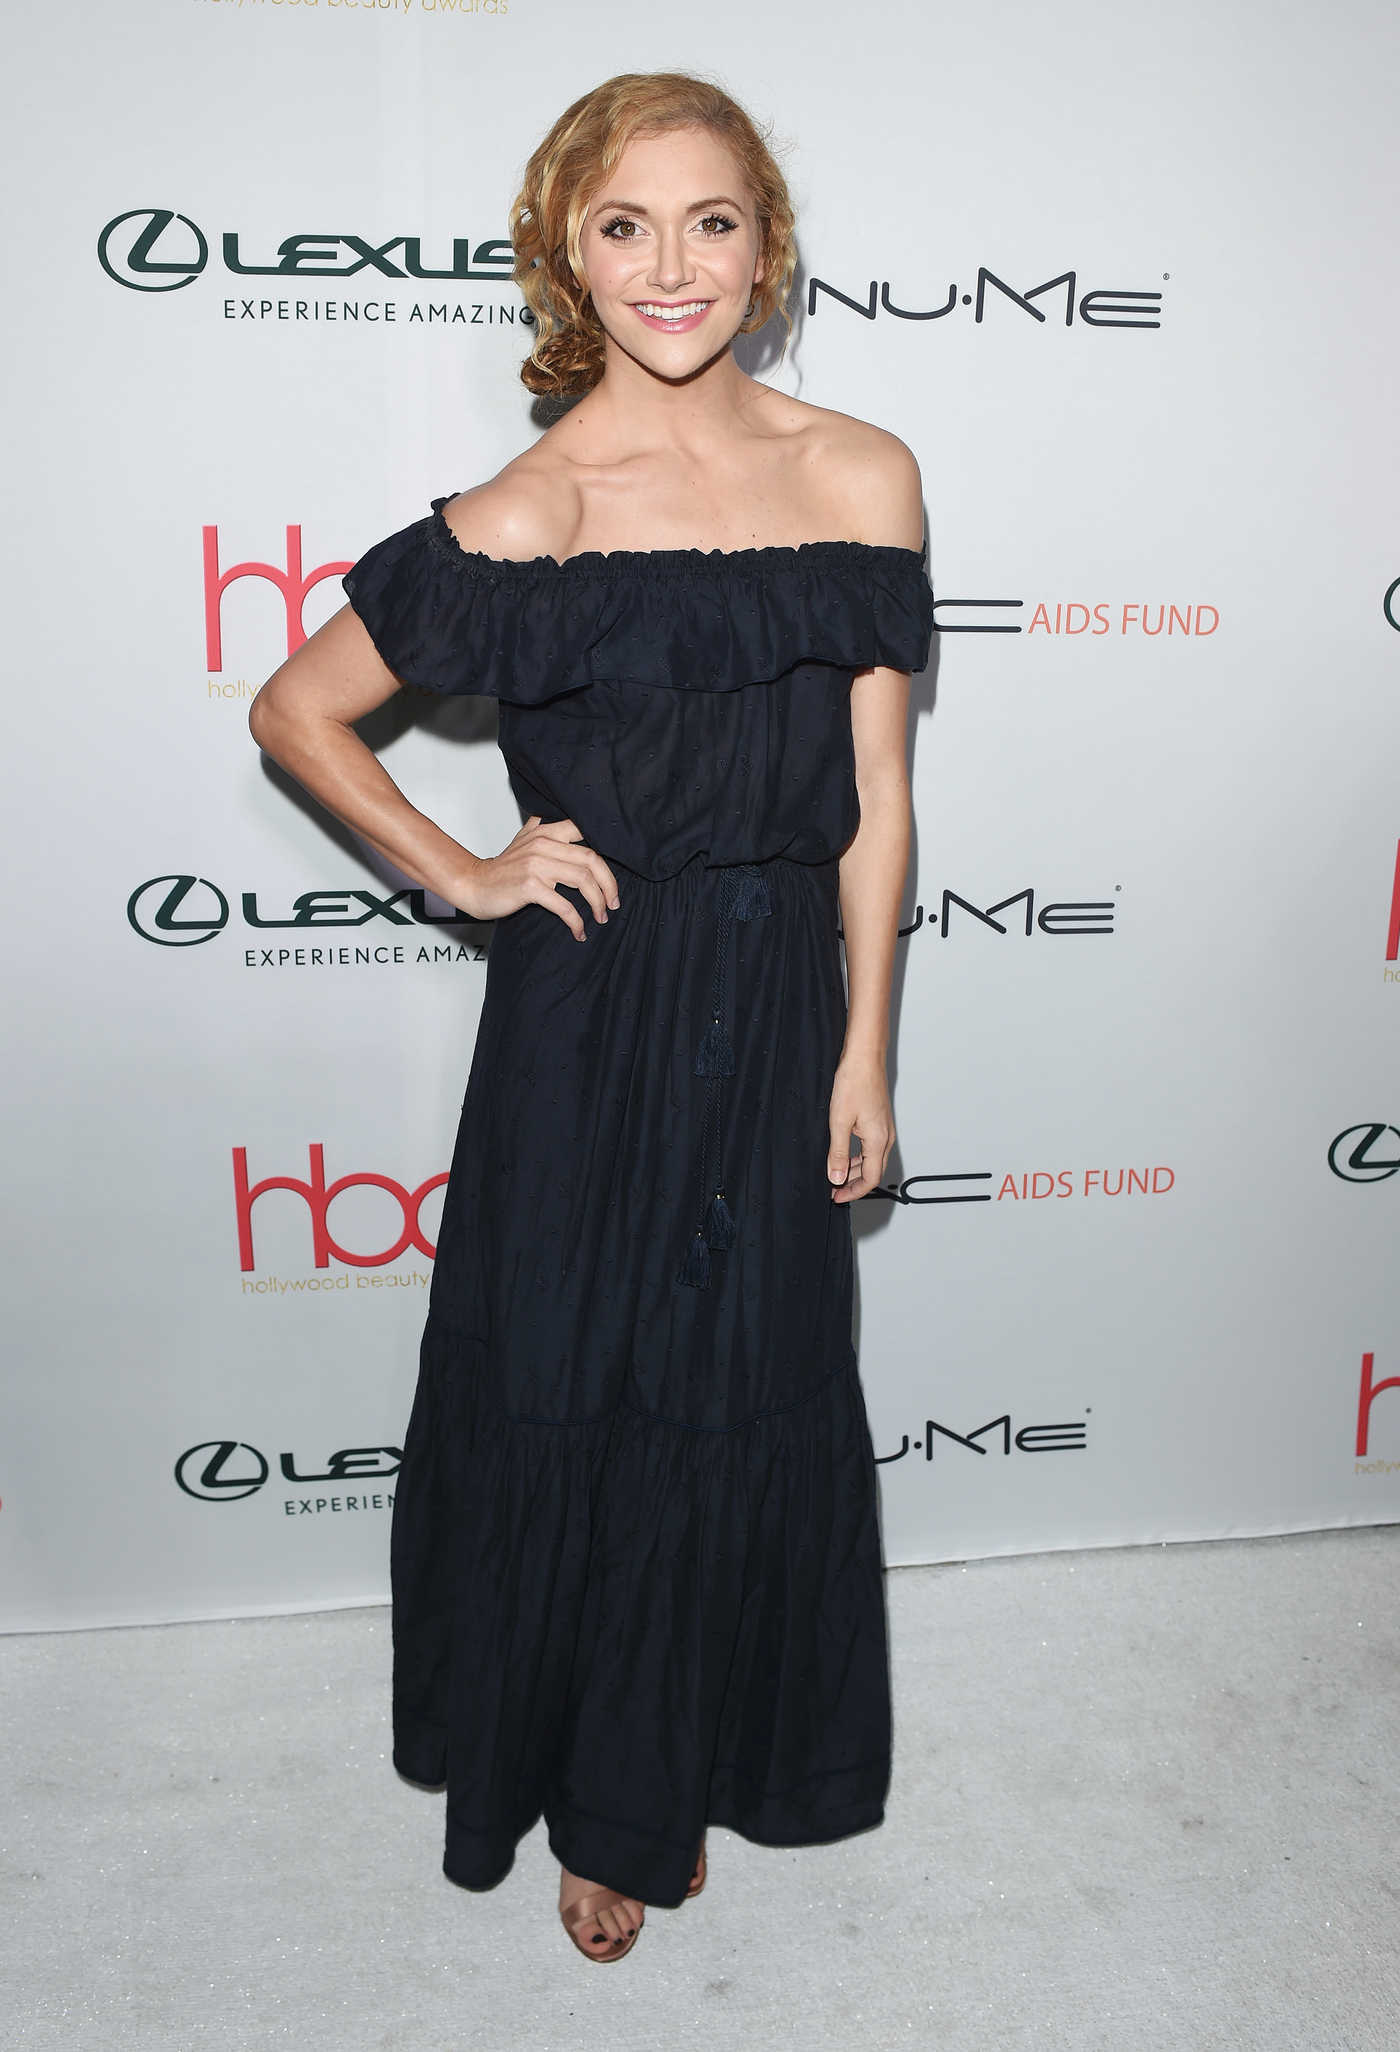 Alyson Stoner at the 3rd Annual Hollywood Beauty Awards in Los Angeles 02/19/2017